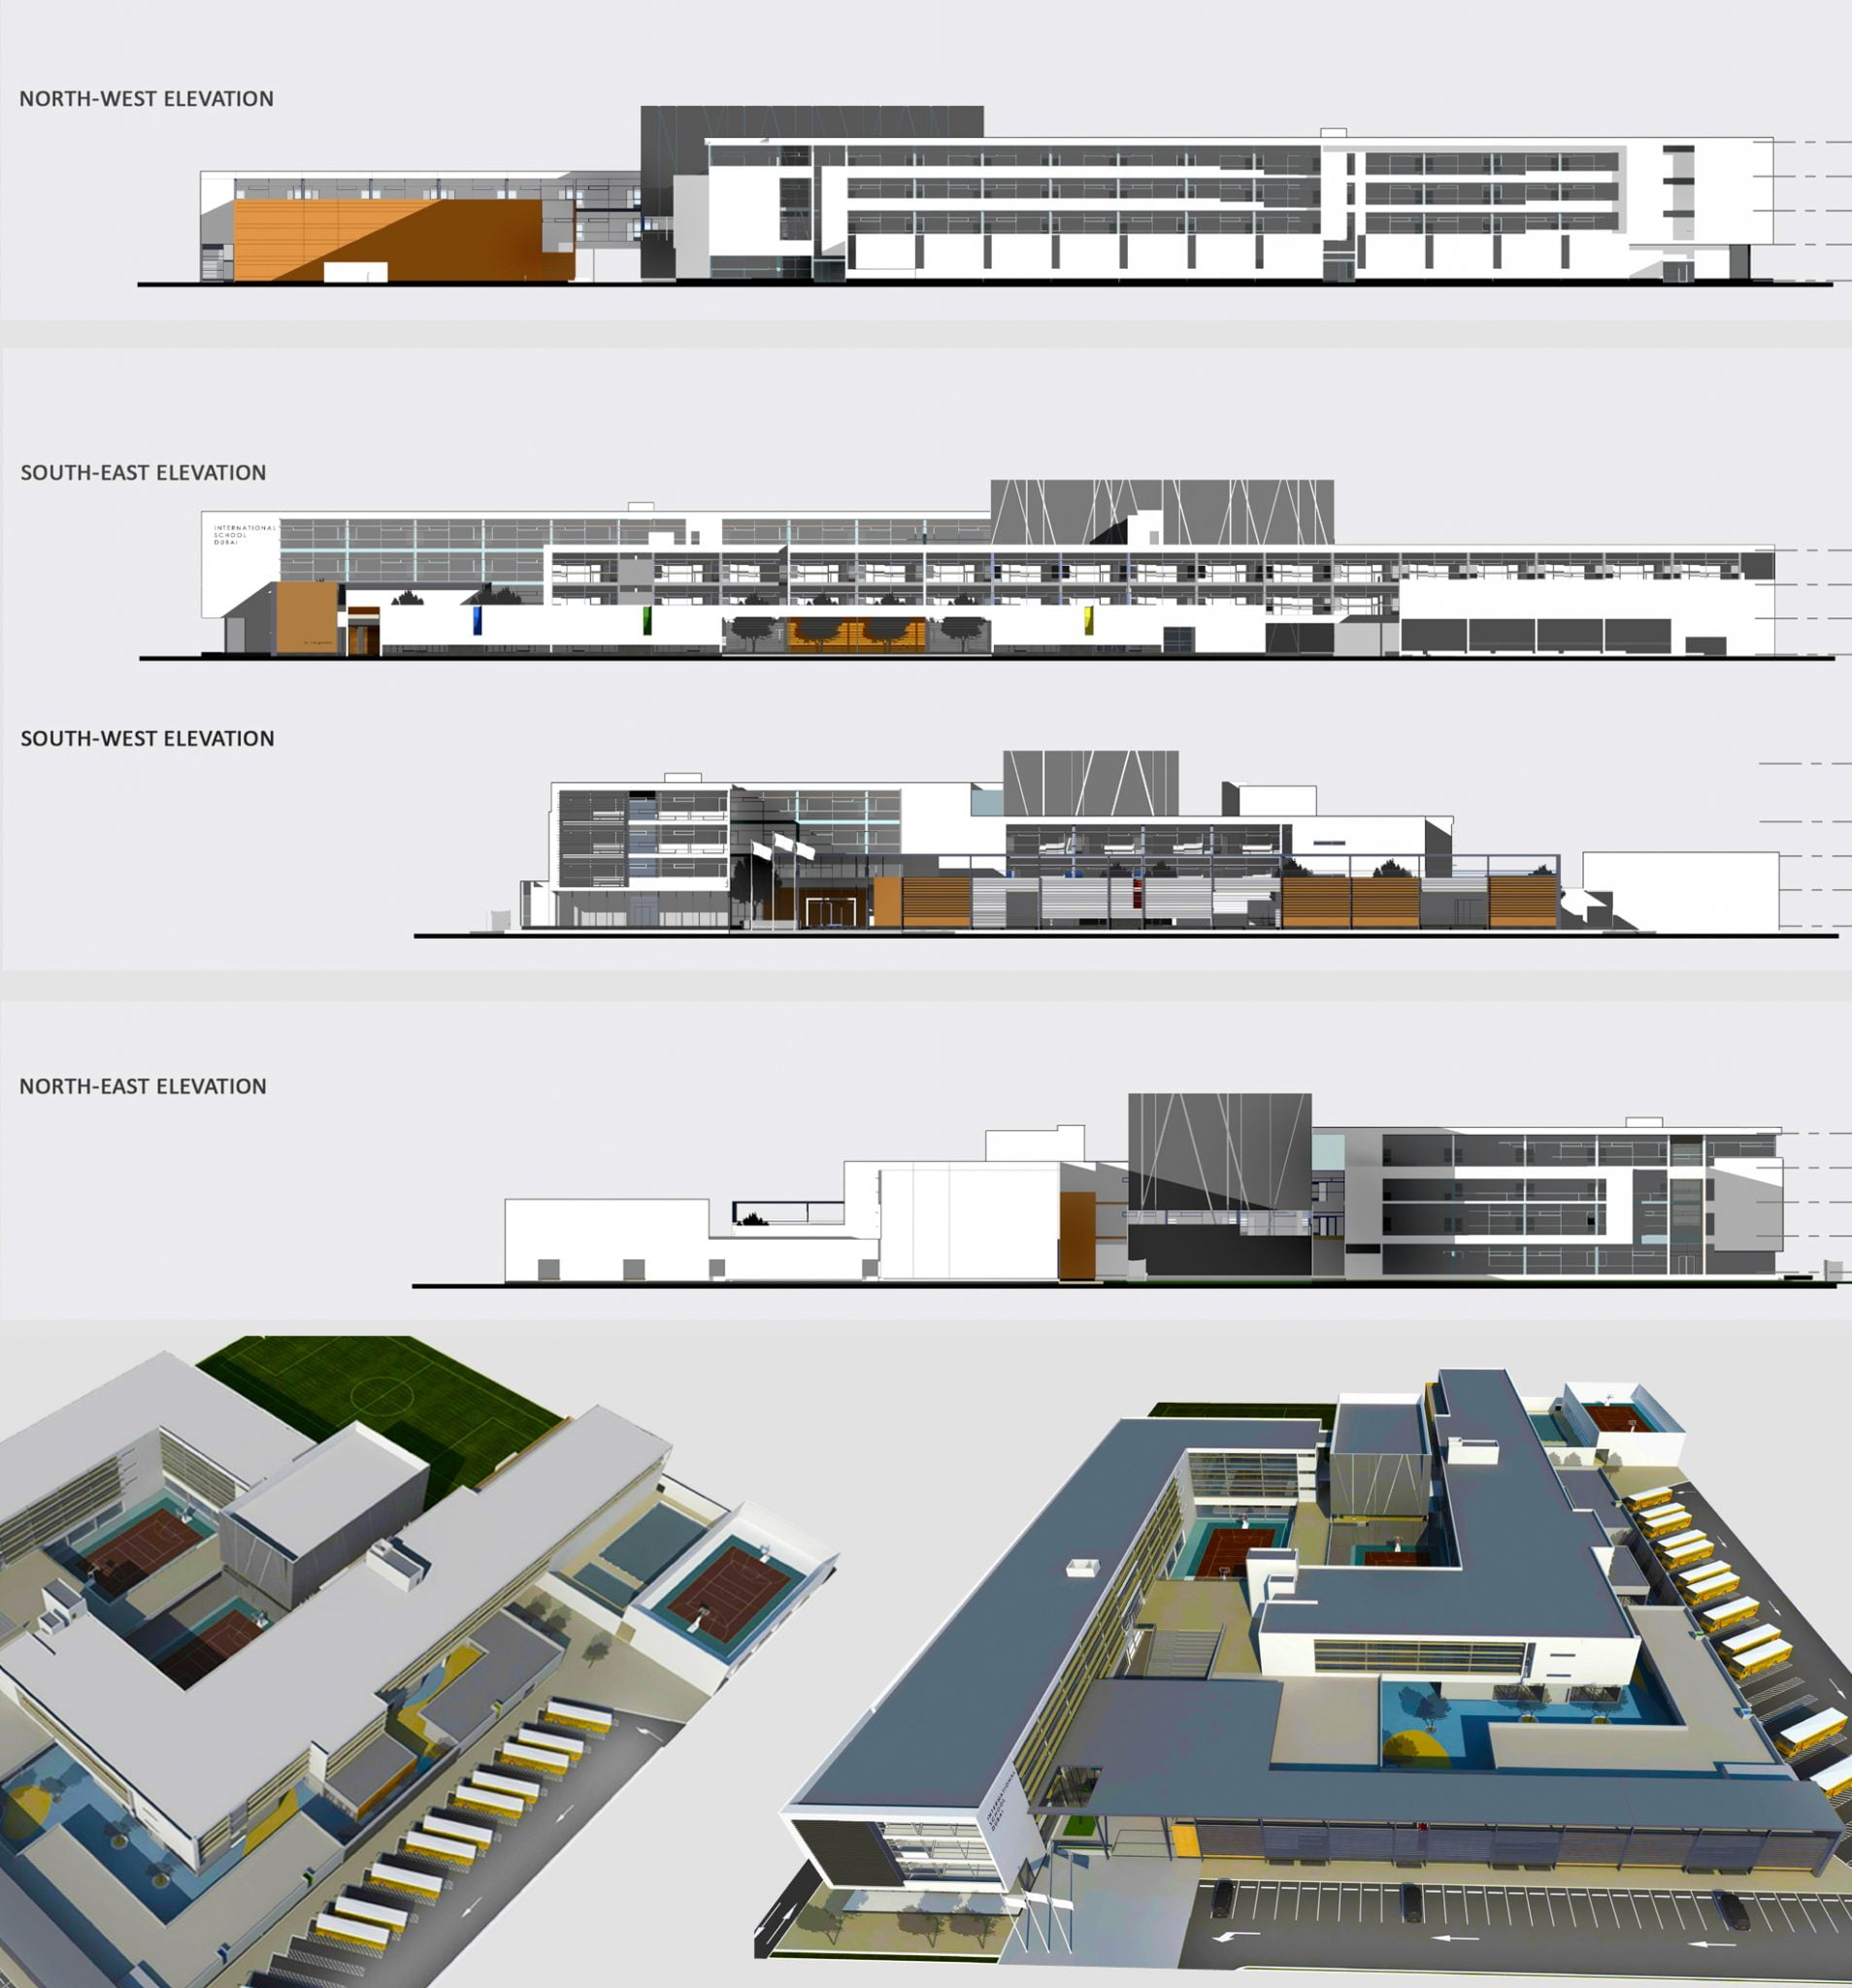 Plans and elevations of the GEMS International School Al Khail in Dubai